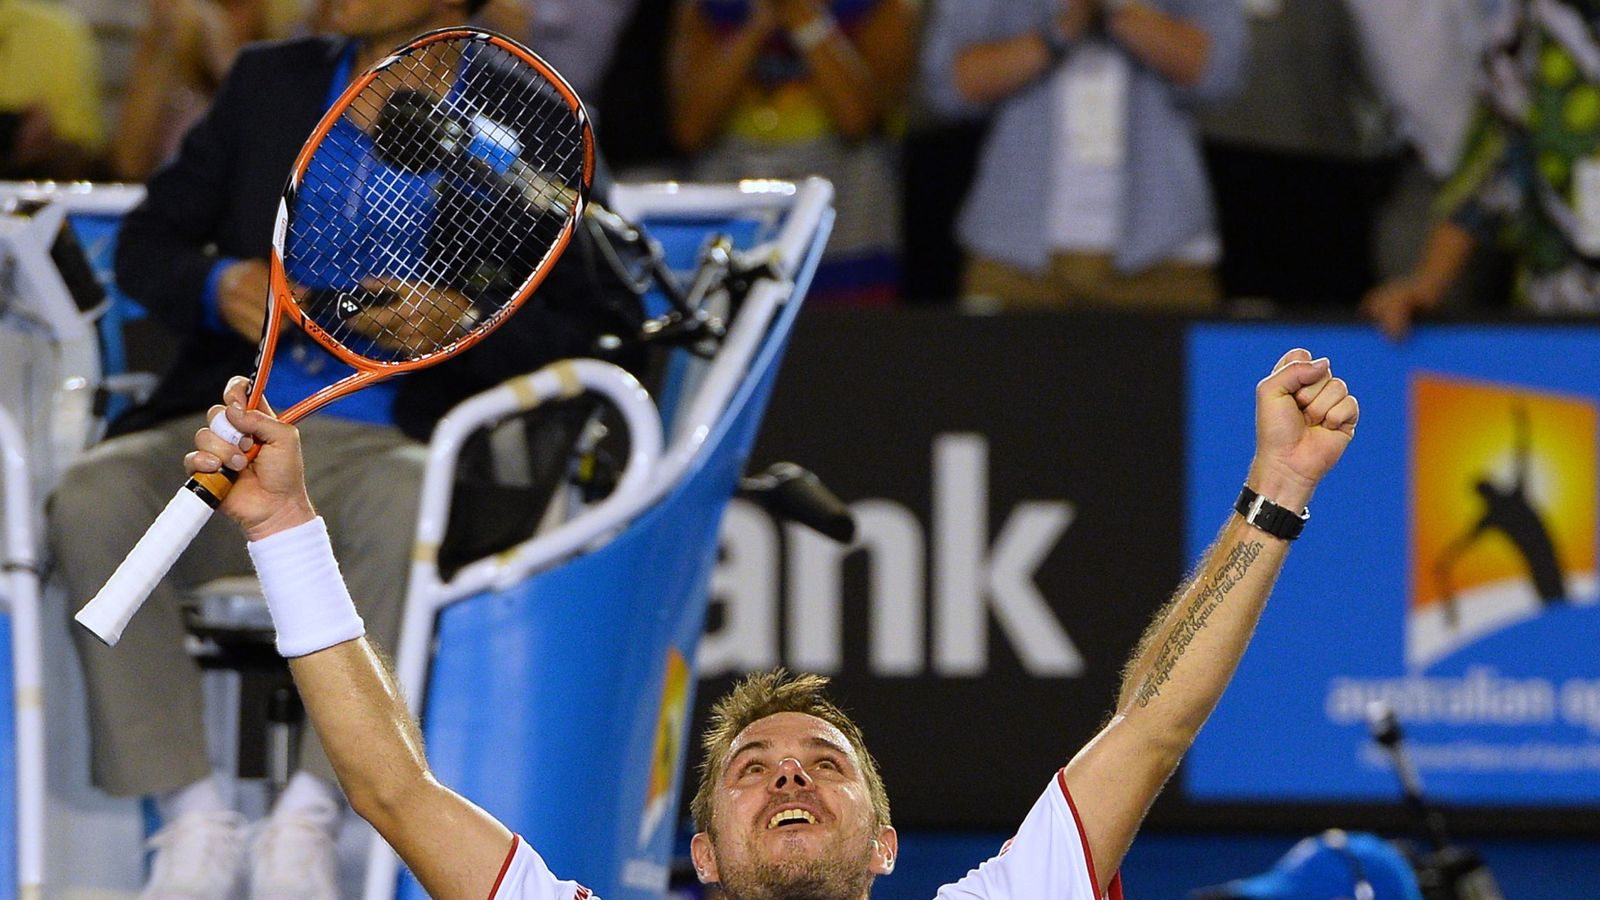 Australian Open: A look back at players who have caused surprises at the opening Grand slam of the year